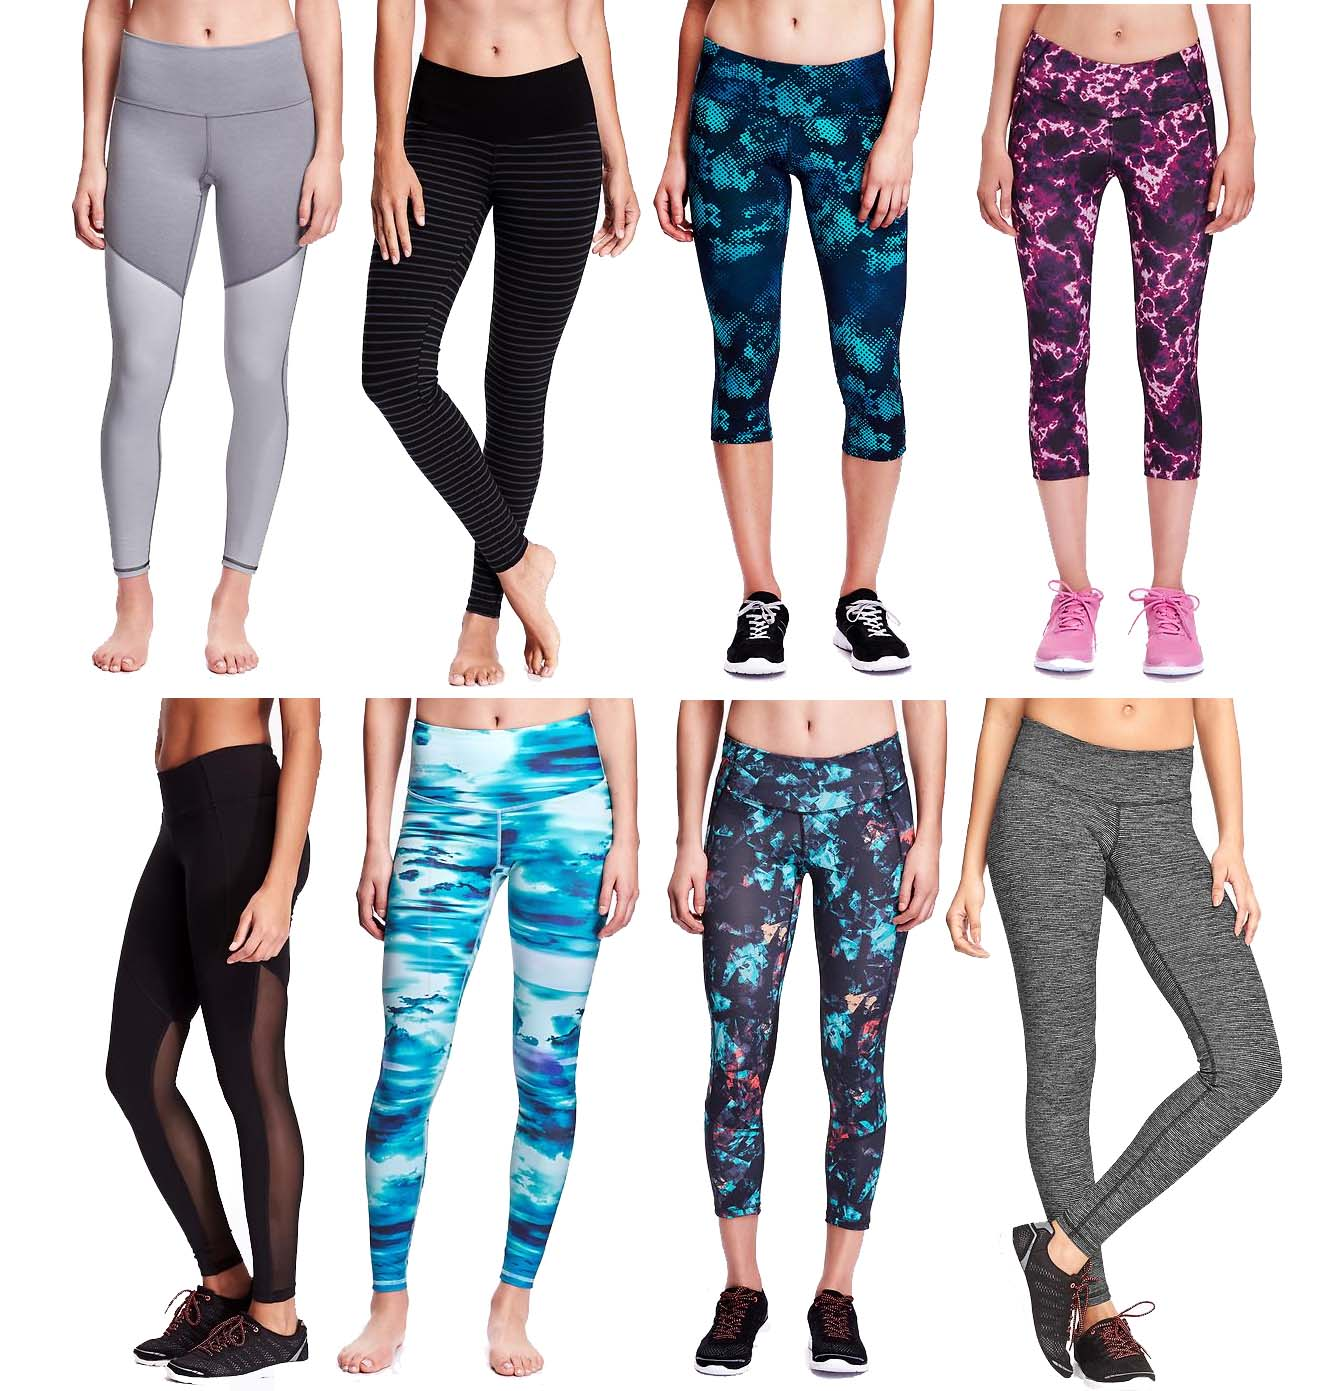 00a4e740c9c34 Old Navy Active: Workout Gear & Running Outfits for Cheap